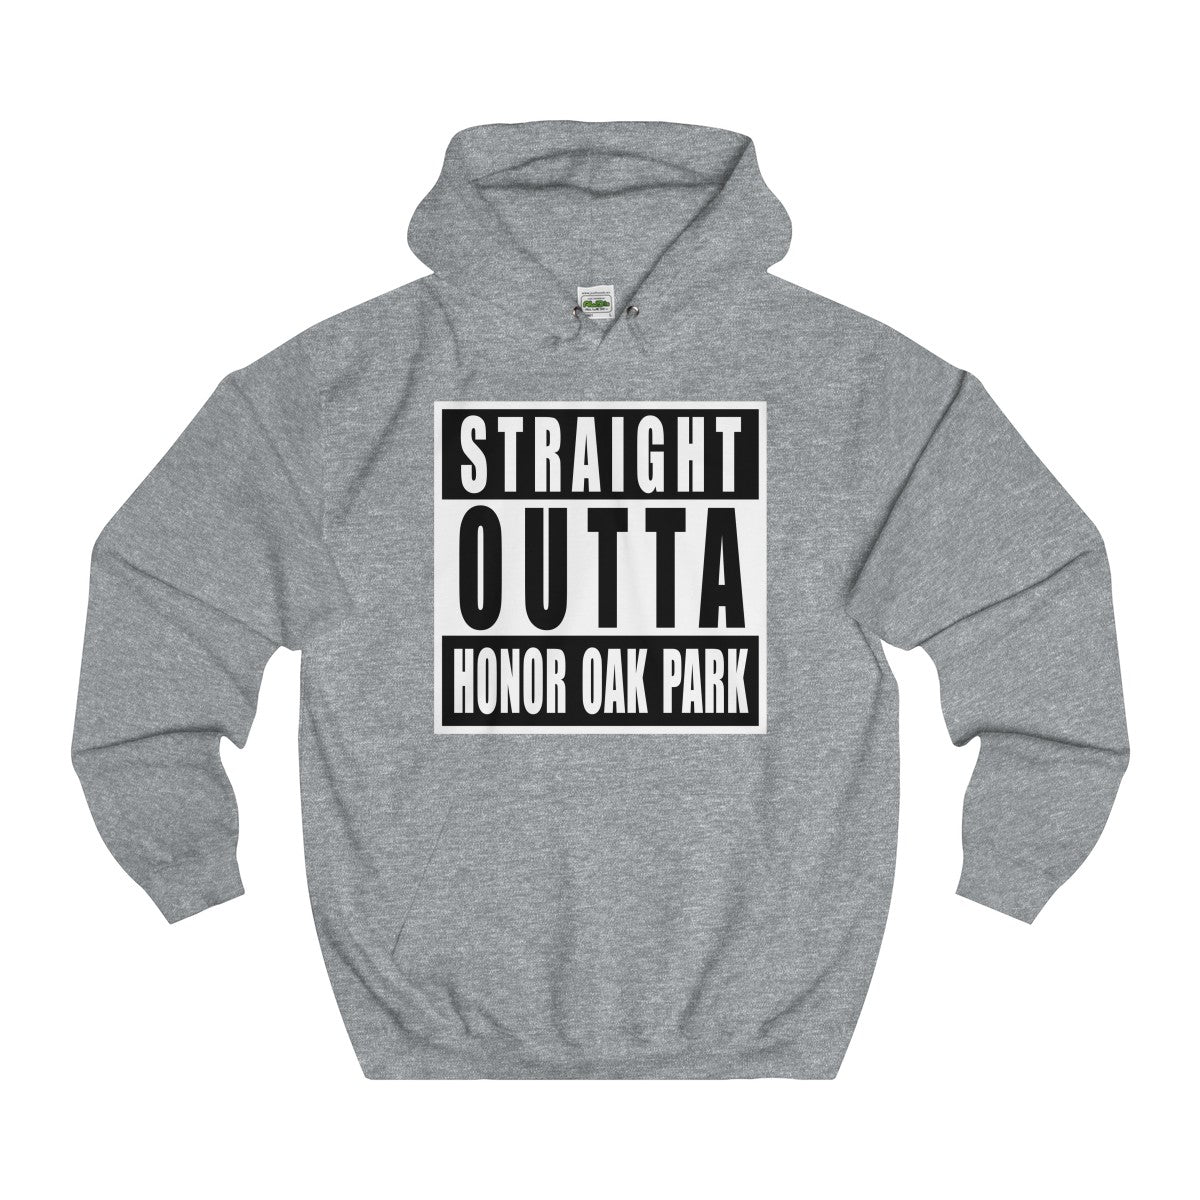 Straight Outta Honor Oak Park Hoodie